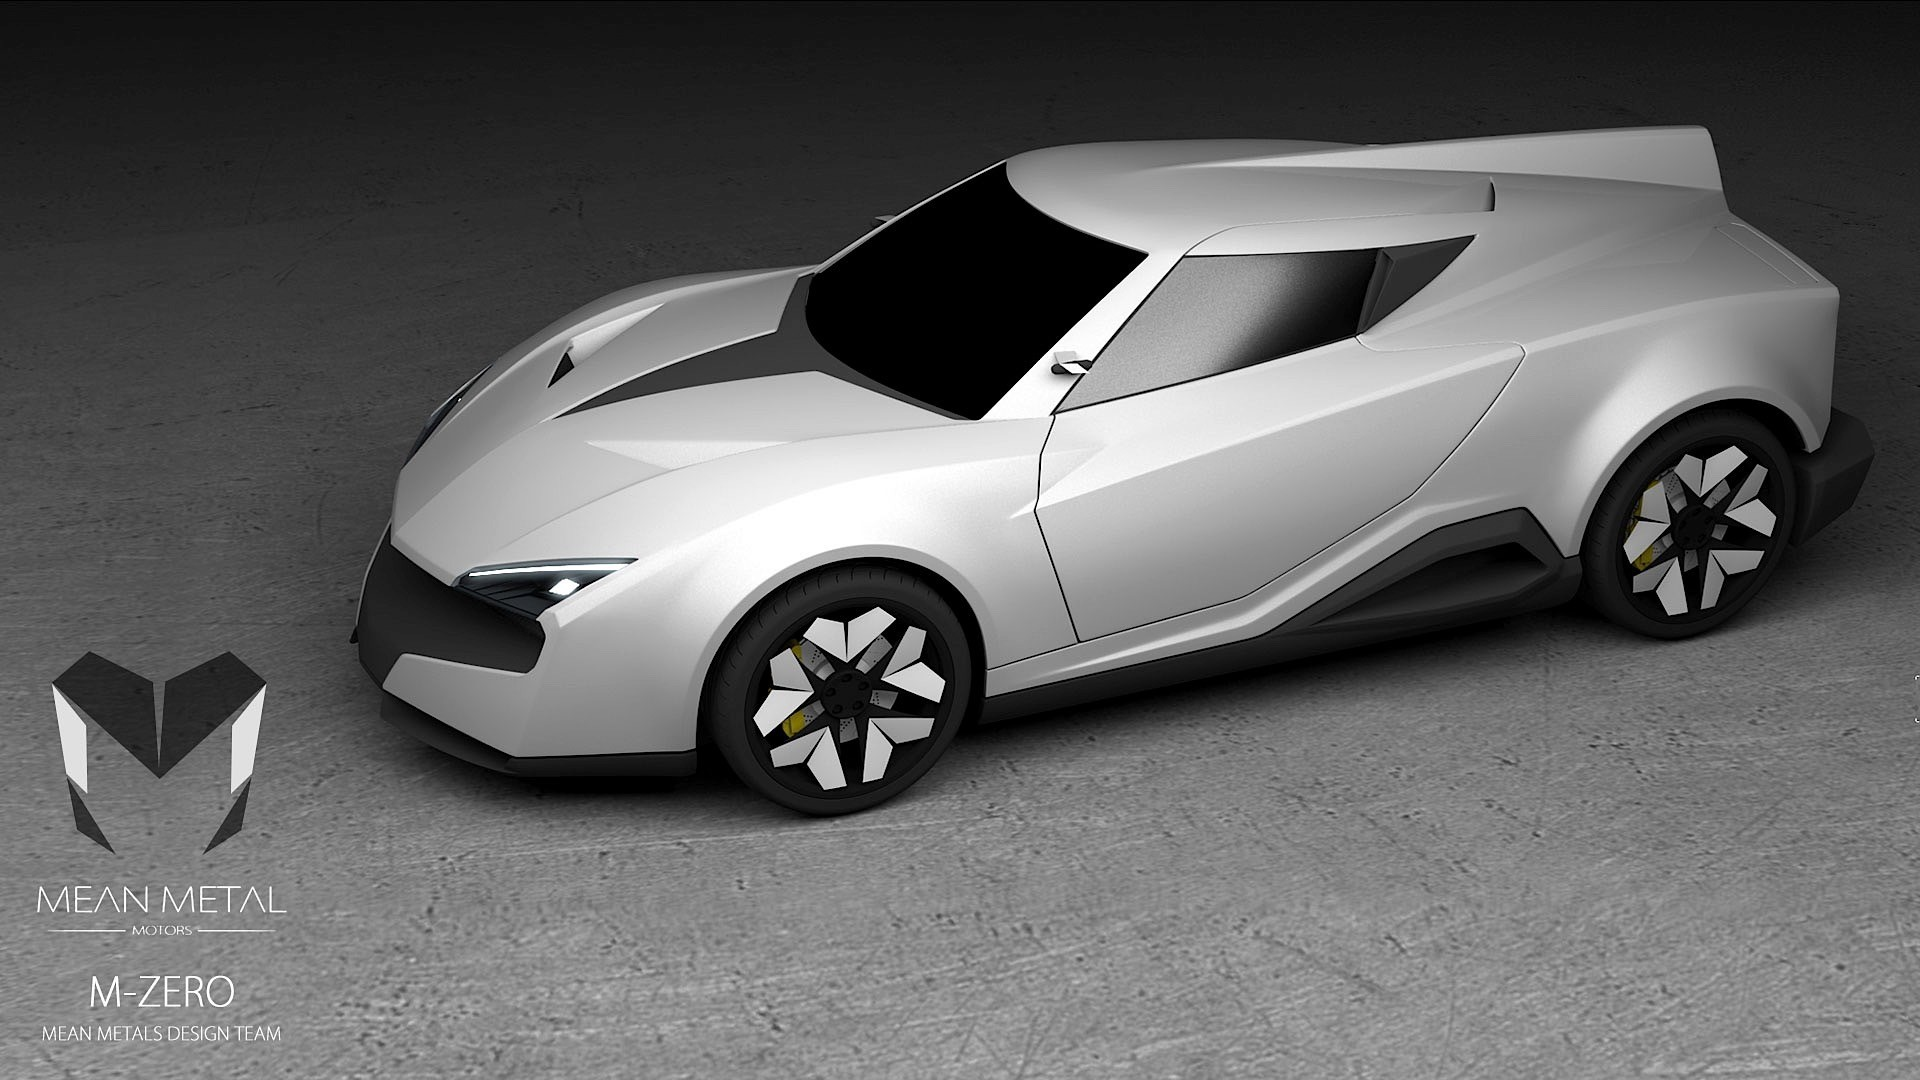 M-Zero Is India\'s First Supercar, But It Needs $7 Million to Become ...